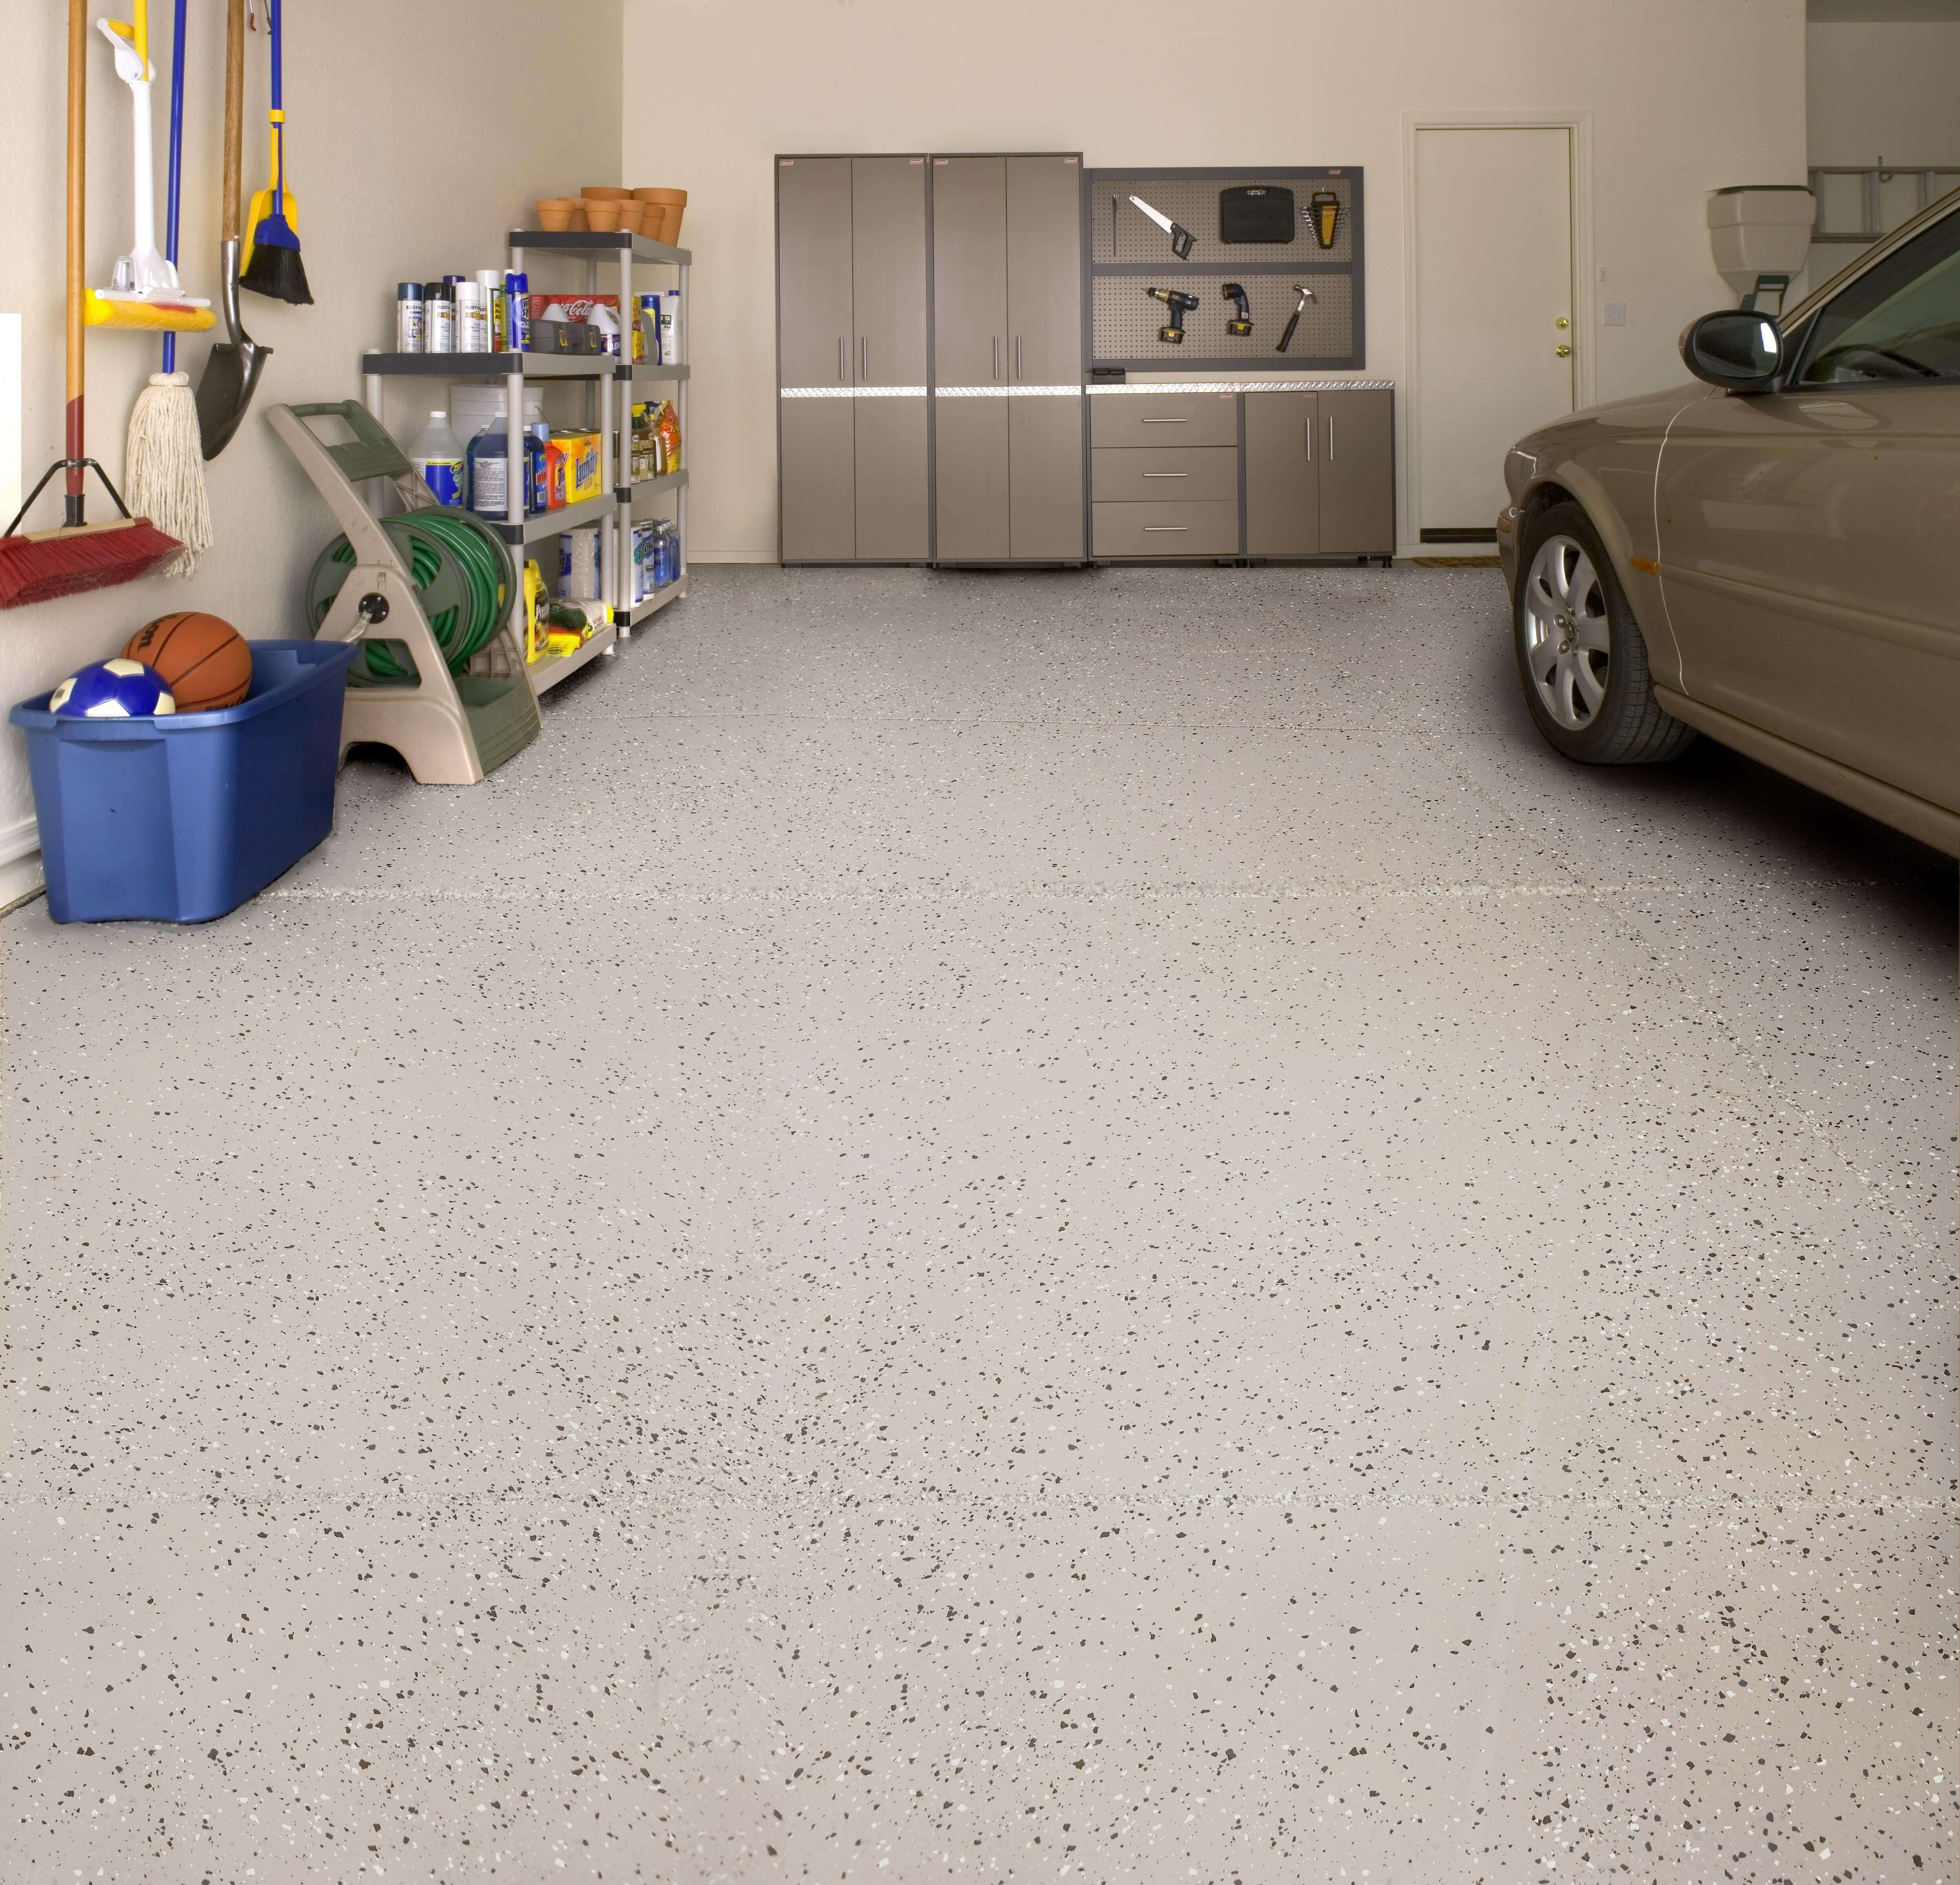 WHY USING EPOXY FOR GARAGE FLOORING